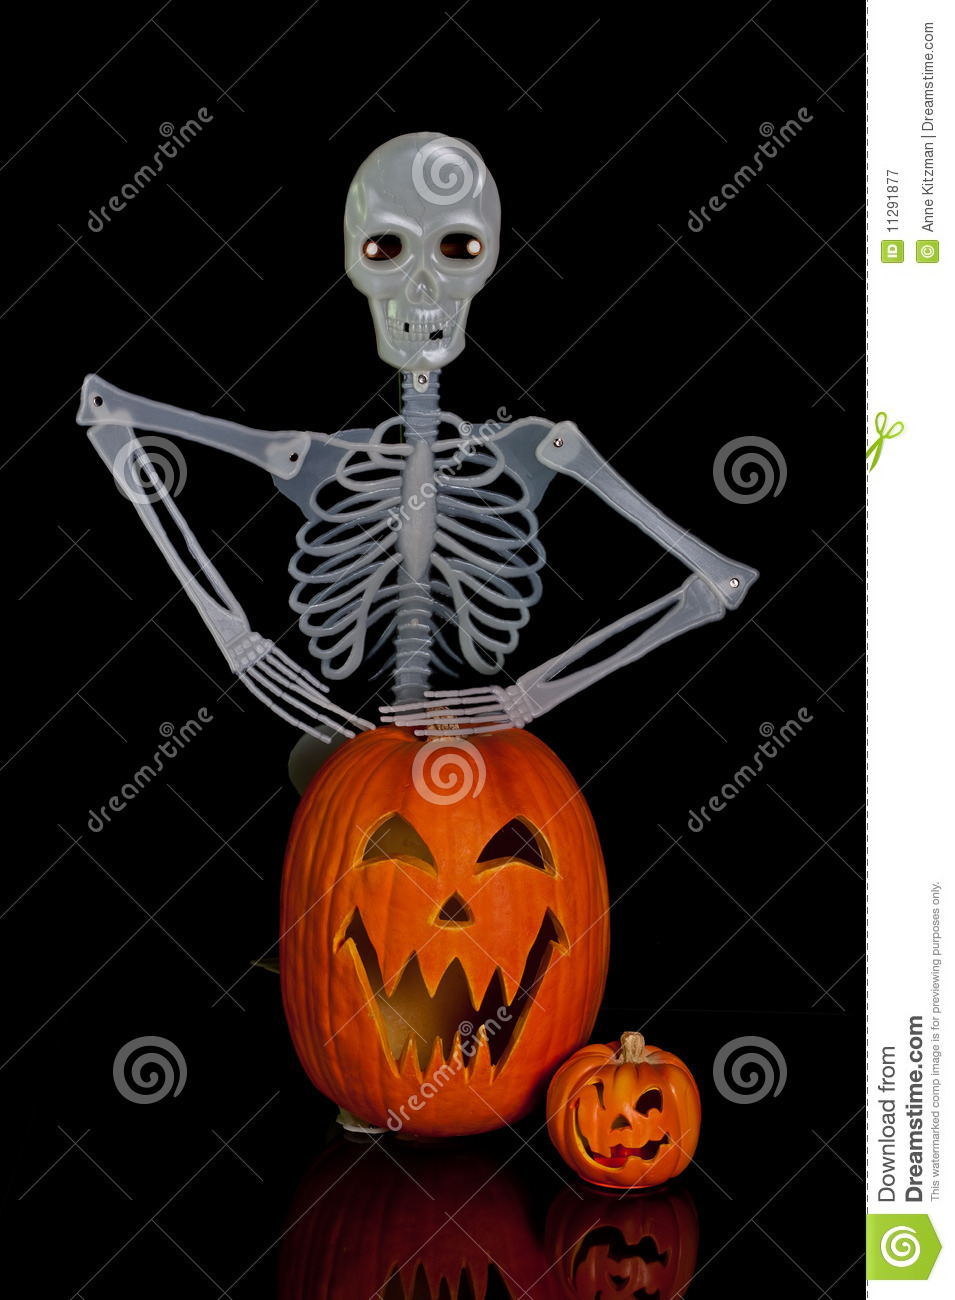 Halloween Skeleton Images Halloween jack o lantern and